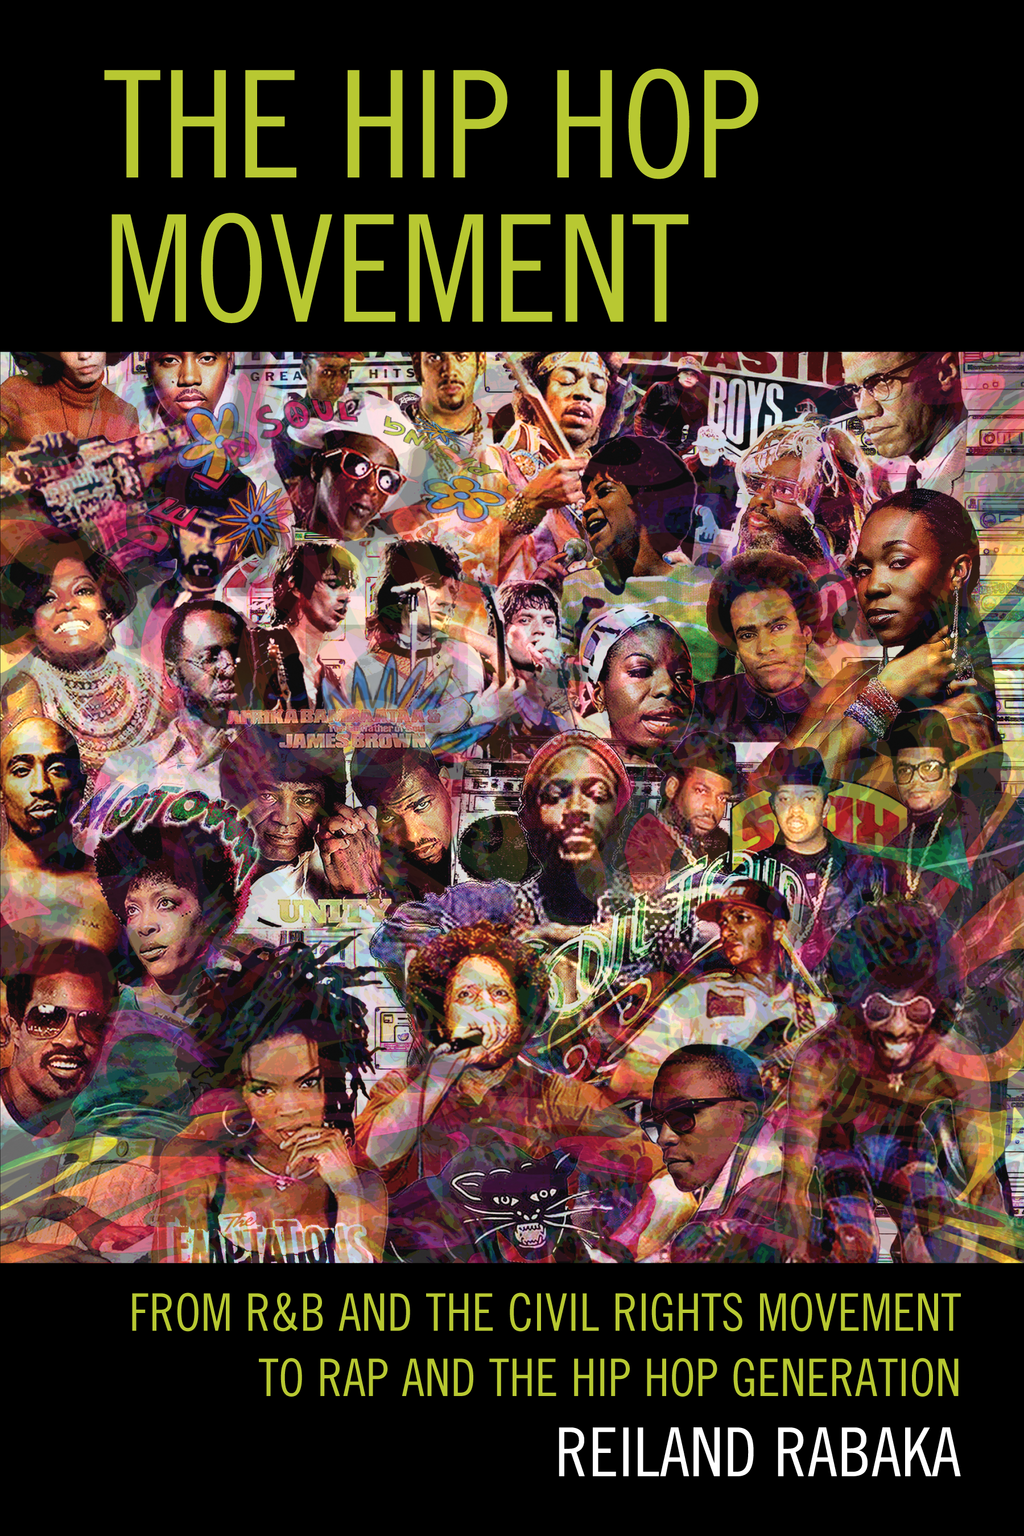 The Hip Hop Movement